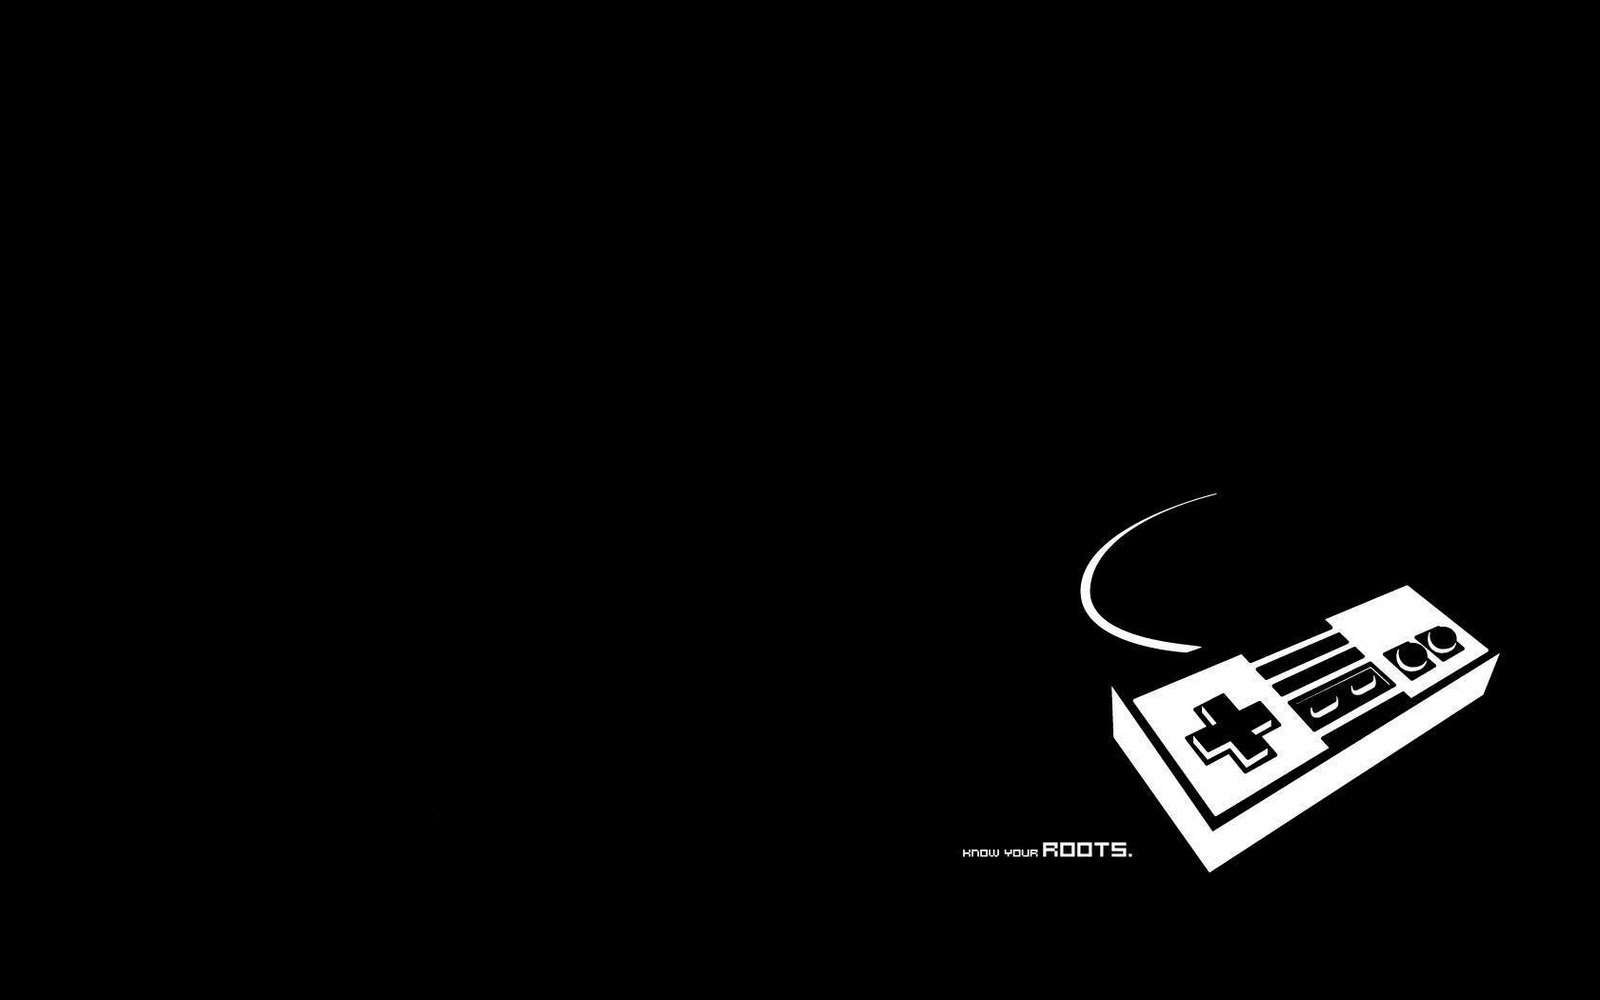 controller retro video game desktop wallpaper: desktop hd wallpaper